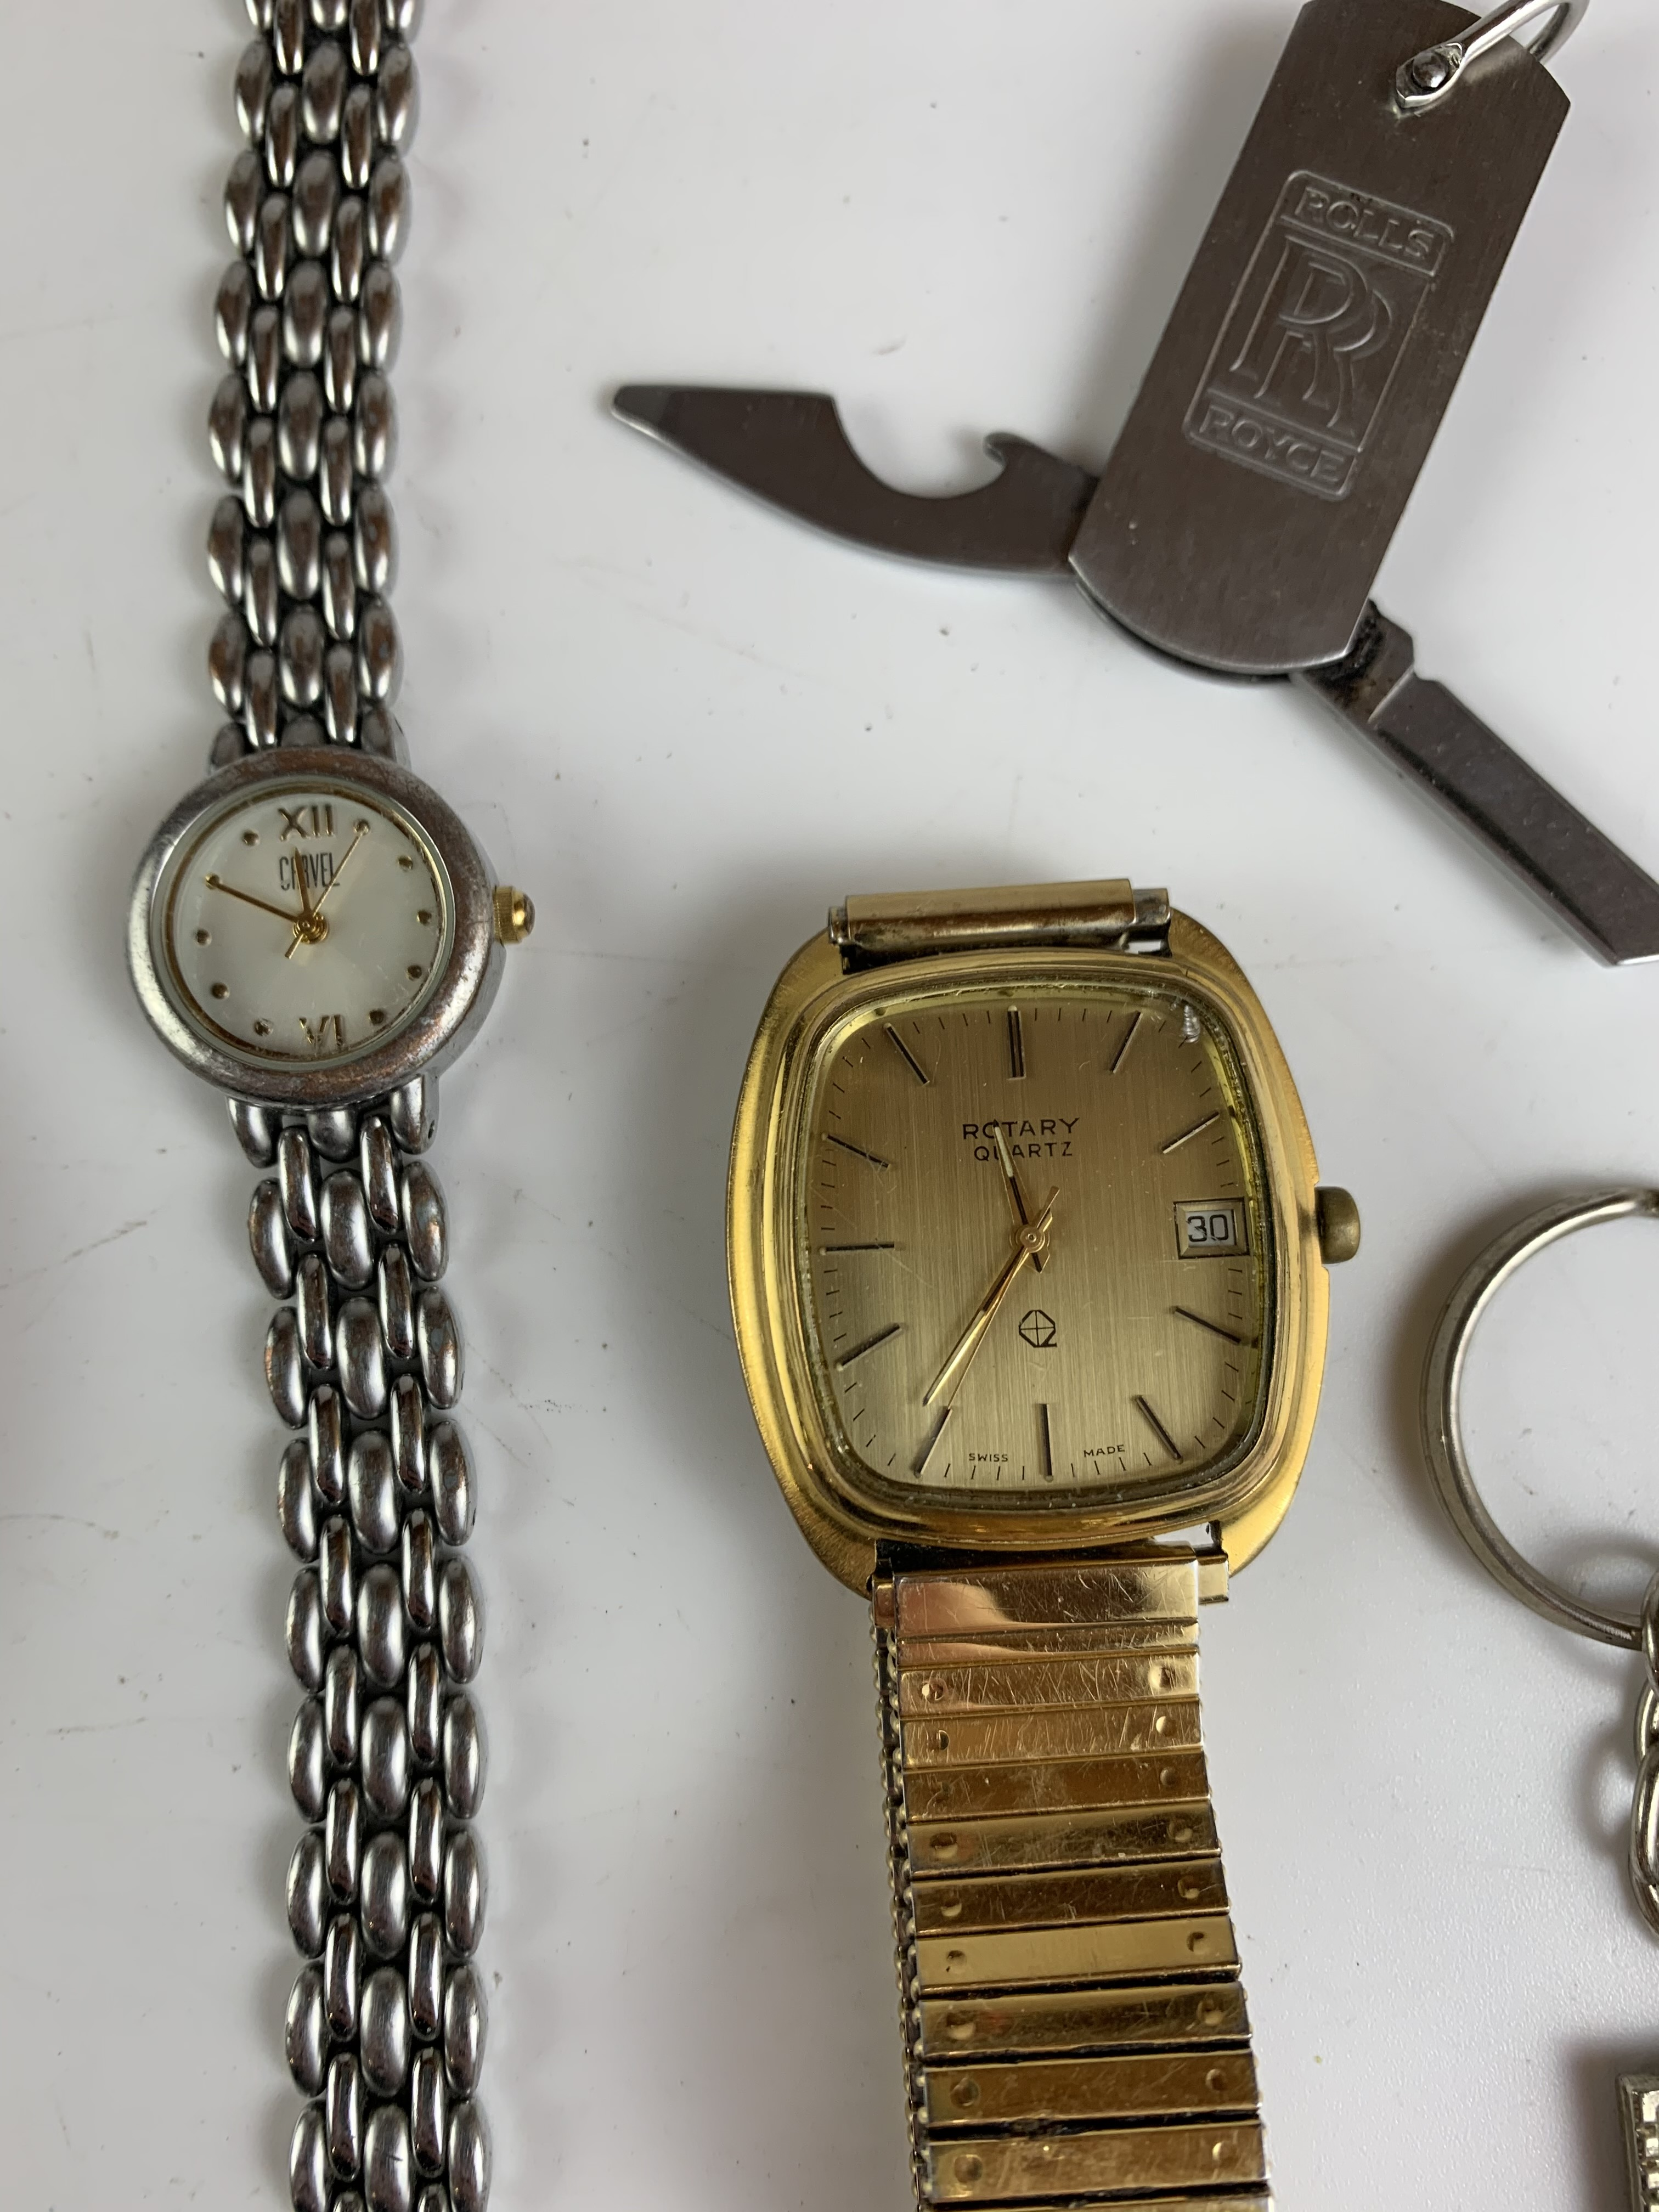 Bag of assorted dress watches, necklaces, keyrings and wooden mouse - Image 5 of 7